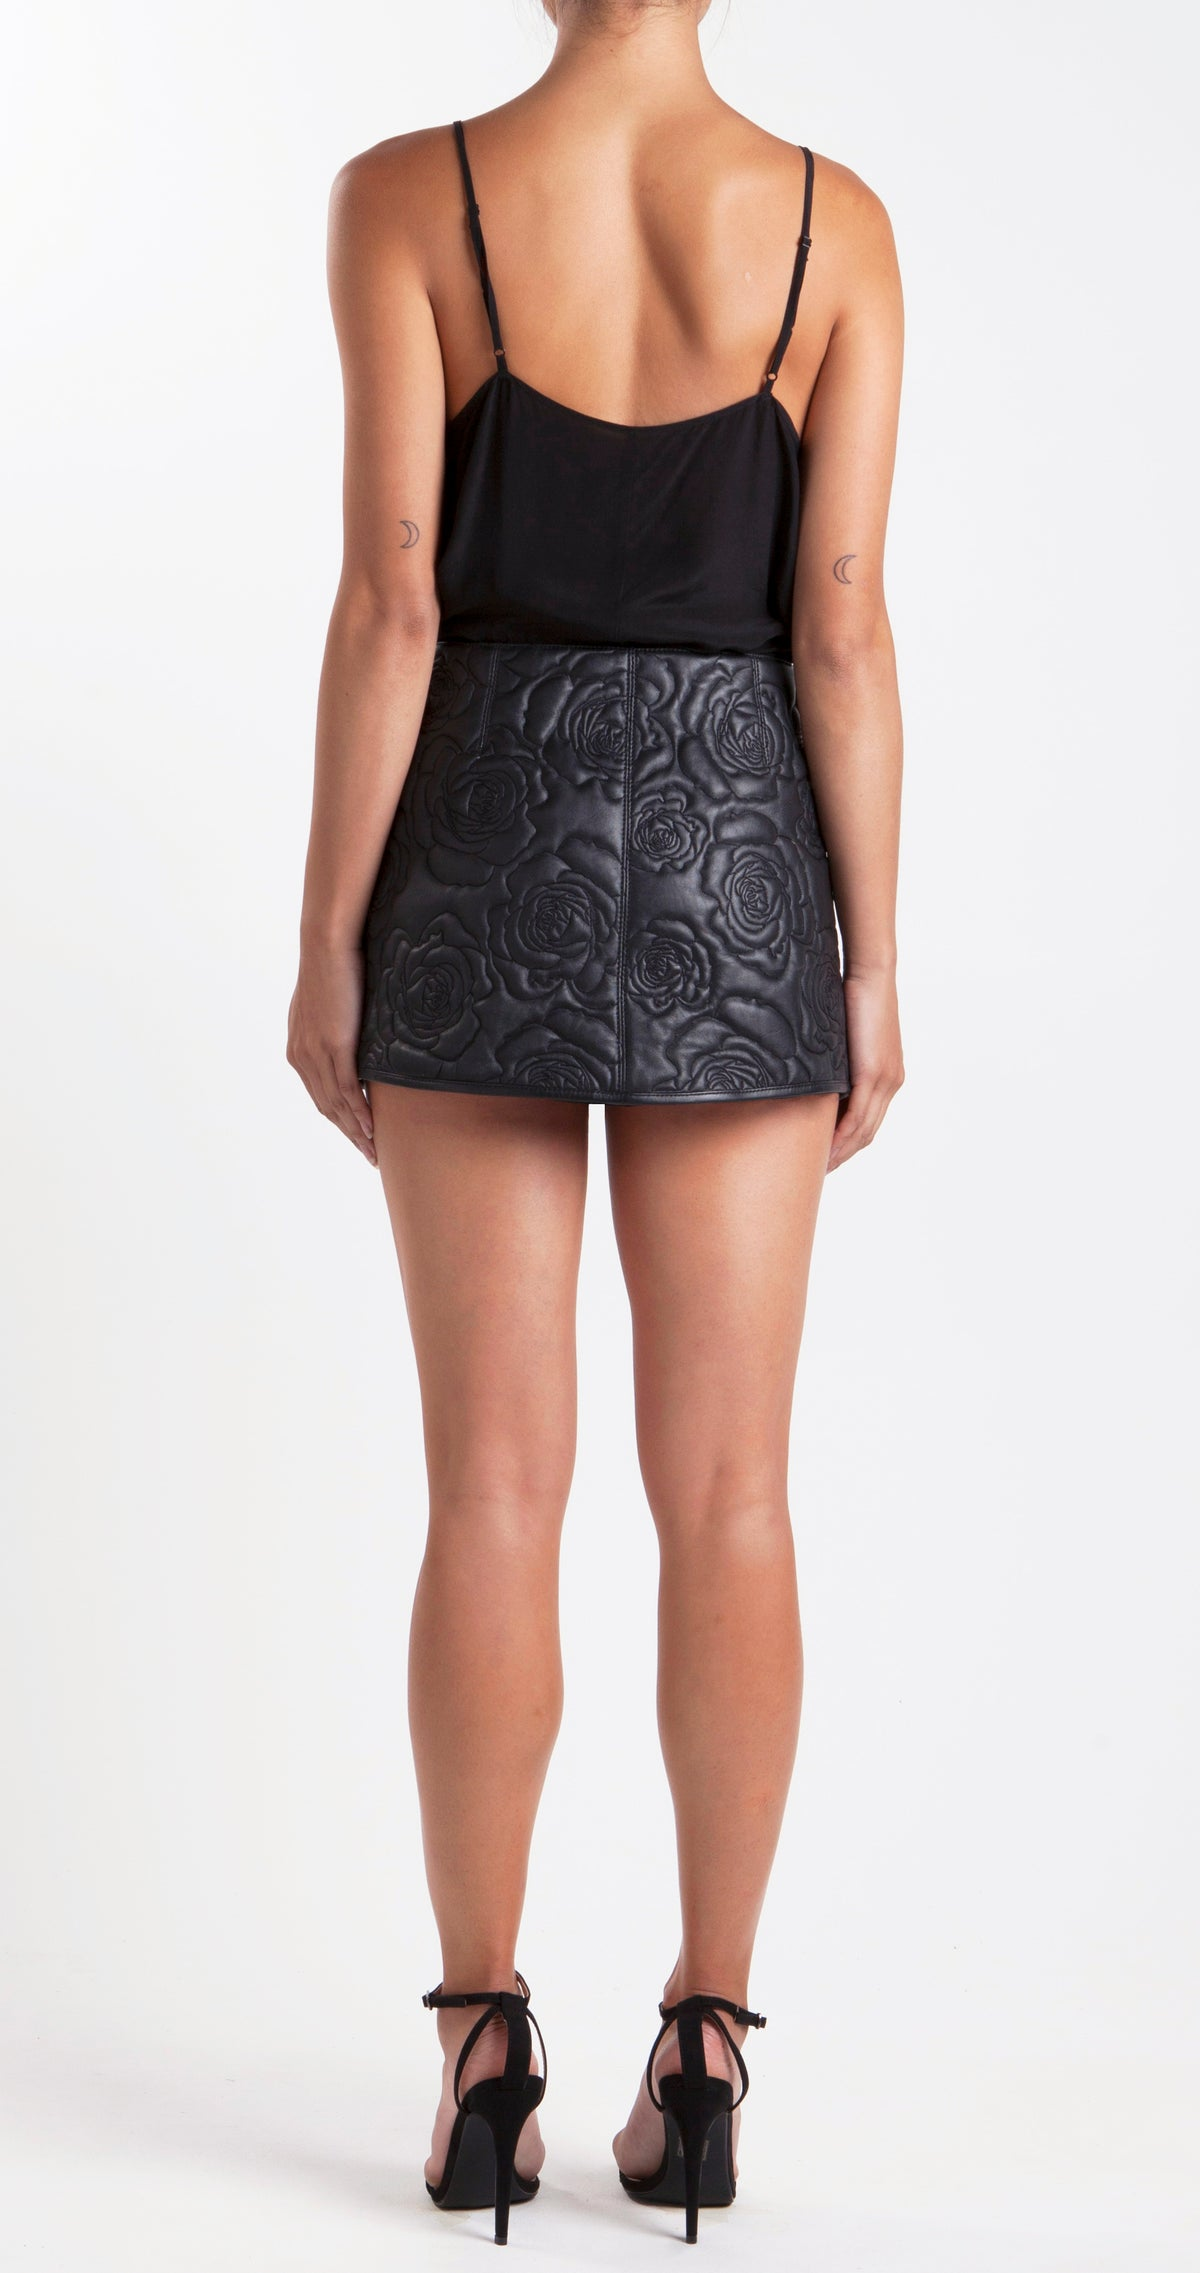 Roses In Silver Vases Embroidered Leather Skirt Back